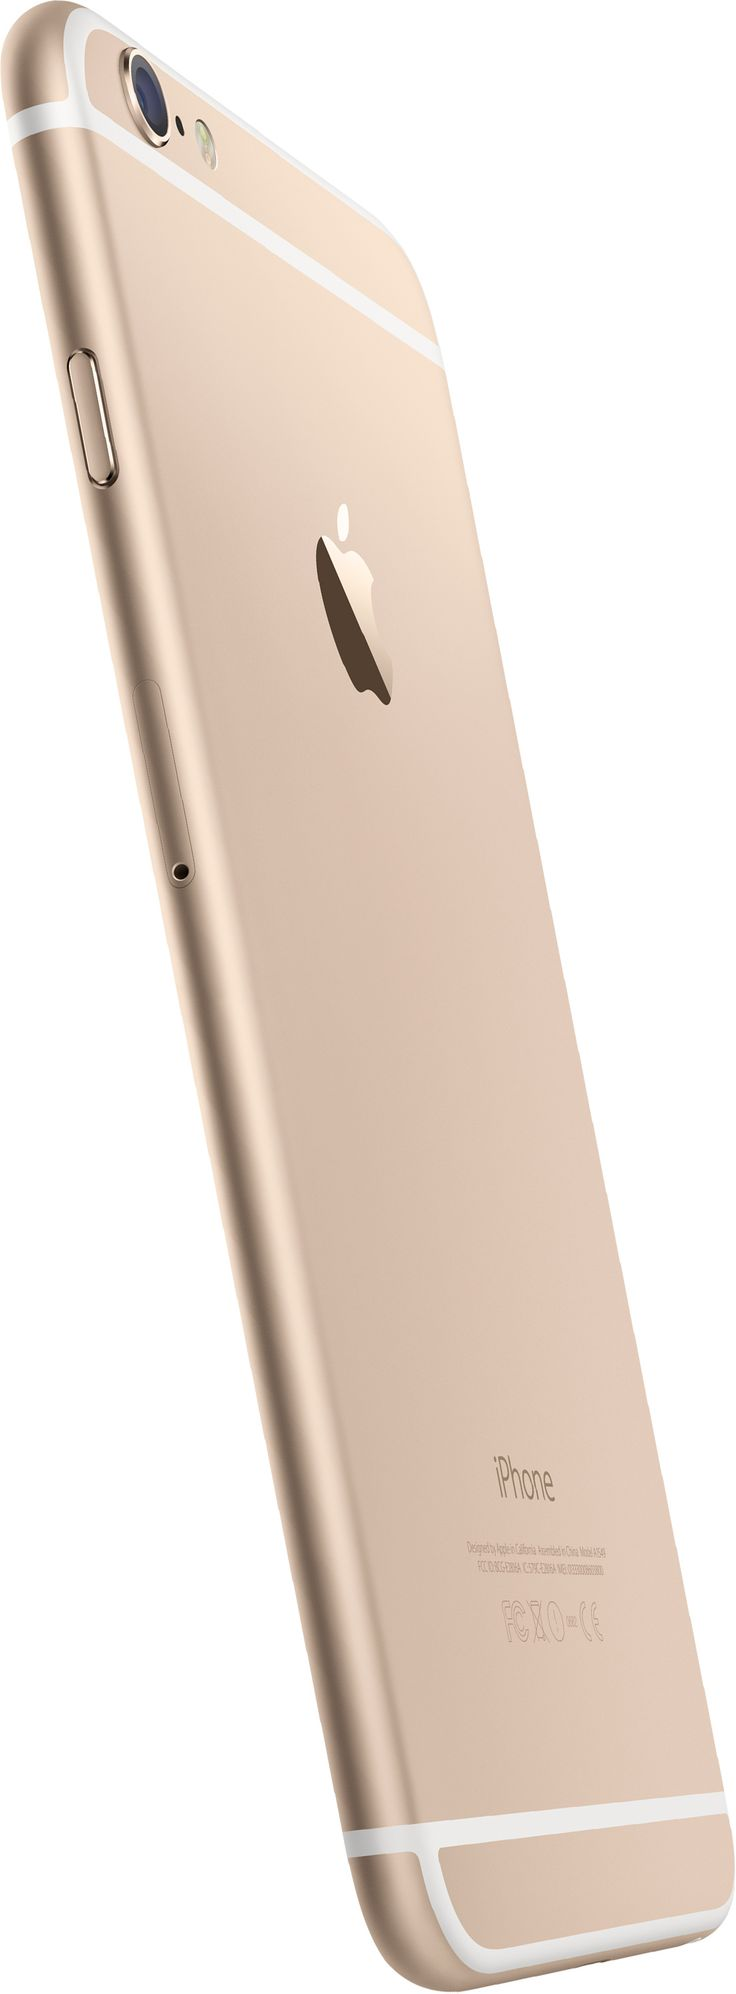 iPhone 6 - Pre-order the new iPhone 6 and iPhone 6 Plus. - Apple Store (U.S.)  Ordered!  Can't wait!